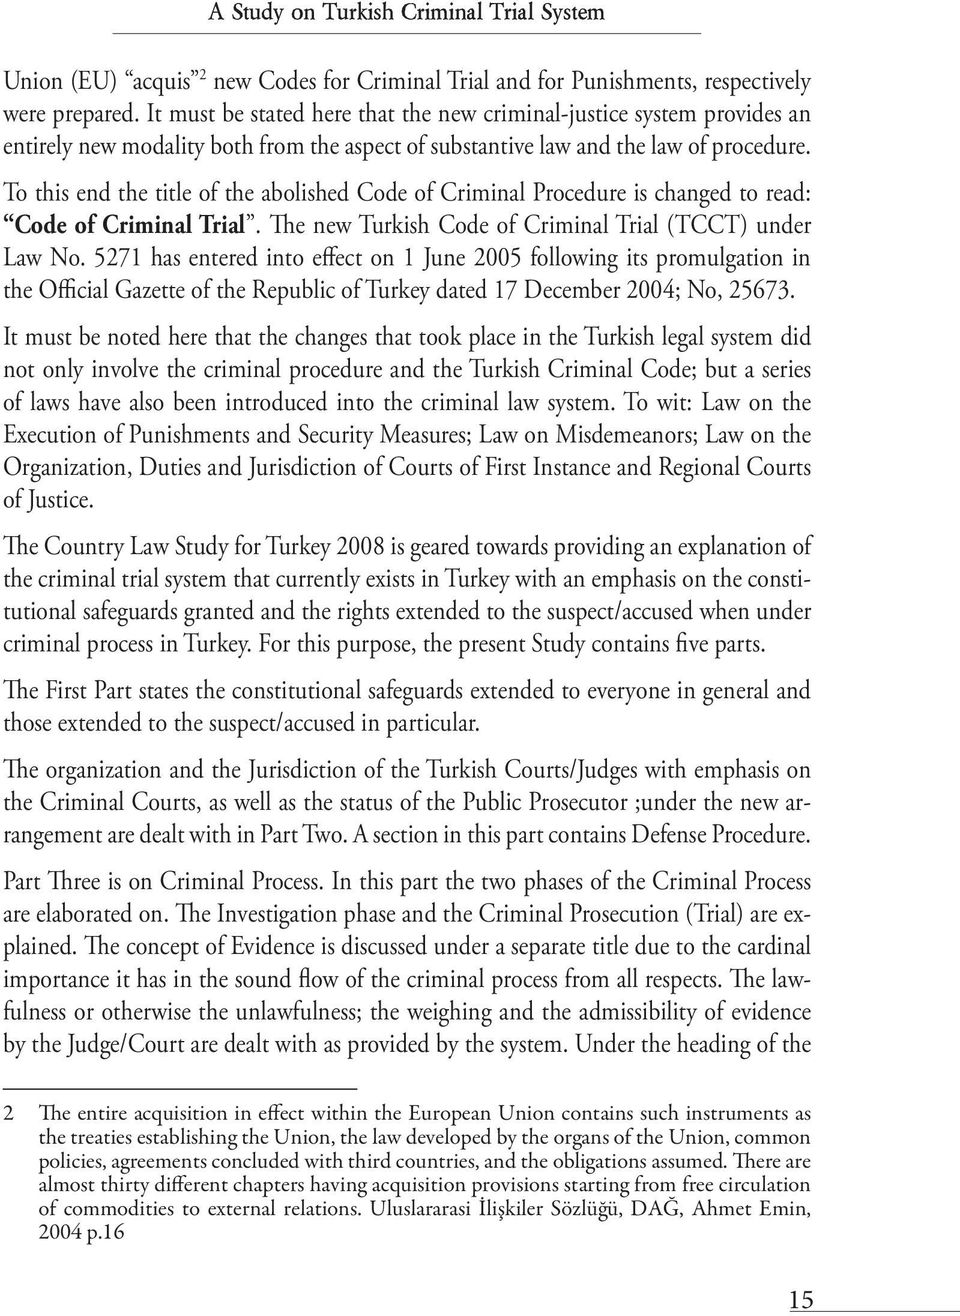 To this end the title of the abolished Code of Criminal Procedure is changed to read: Code of Criminal Trial. The new Turkish Code of Criminal Trial (TCCT) under Law No.